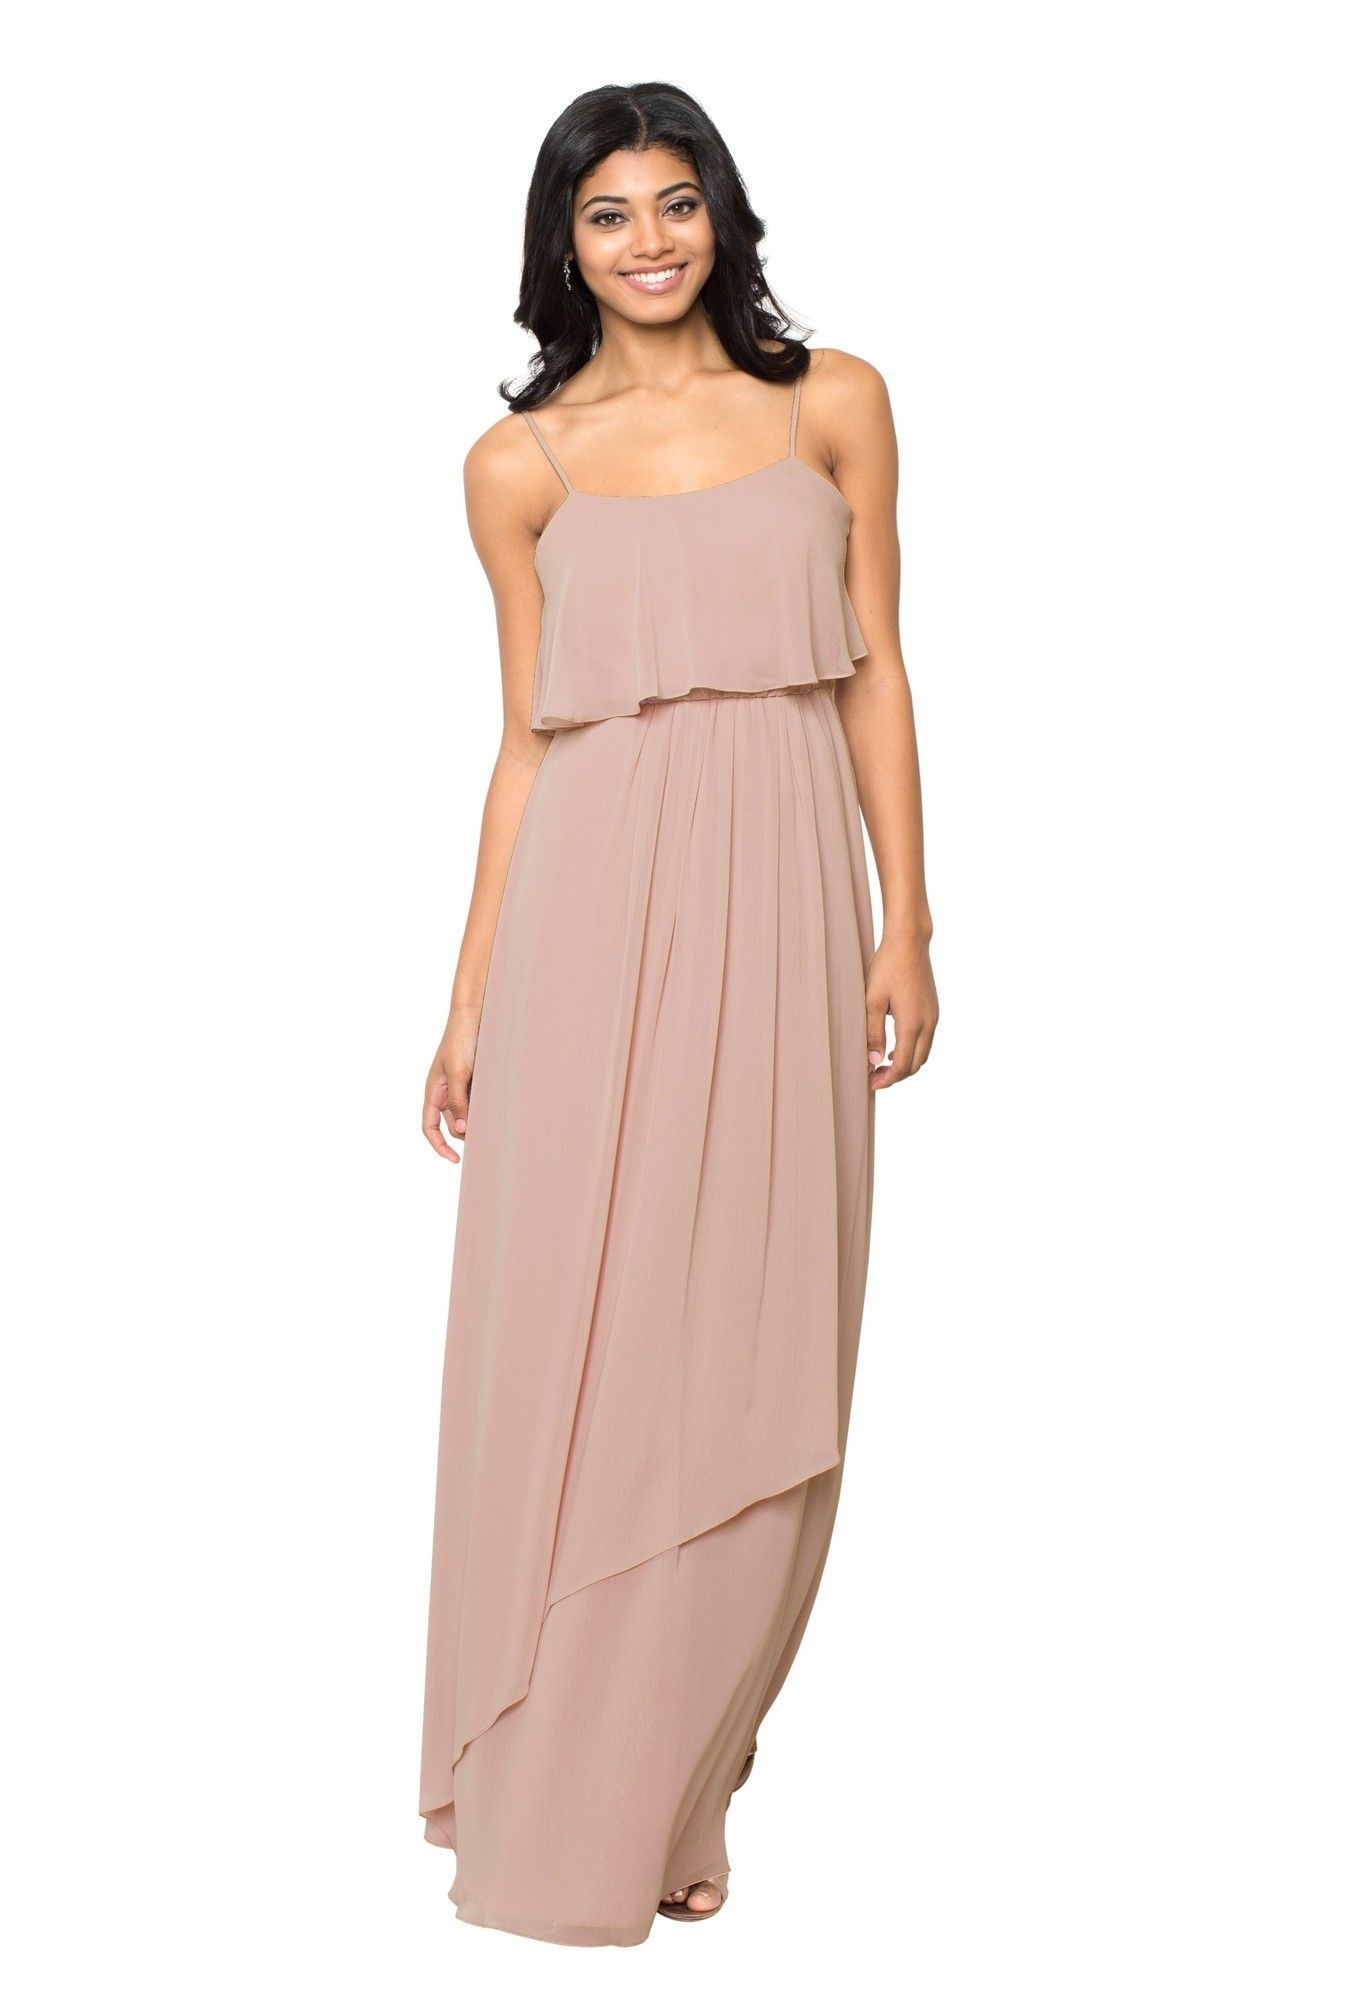 Watters Patti | Chiffon gown, Gowns and Bridal parties